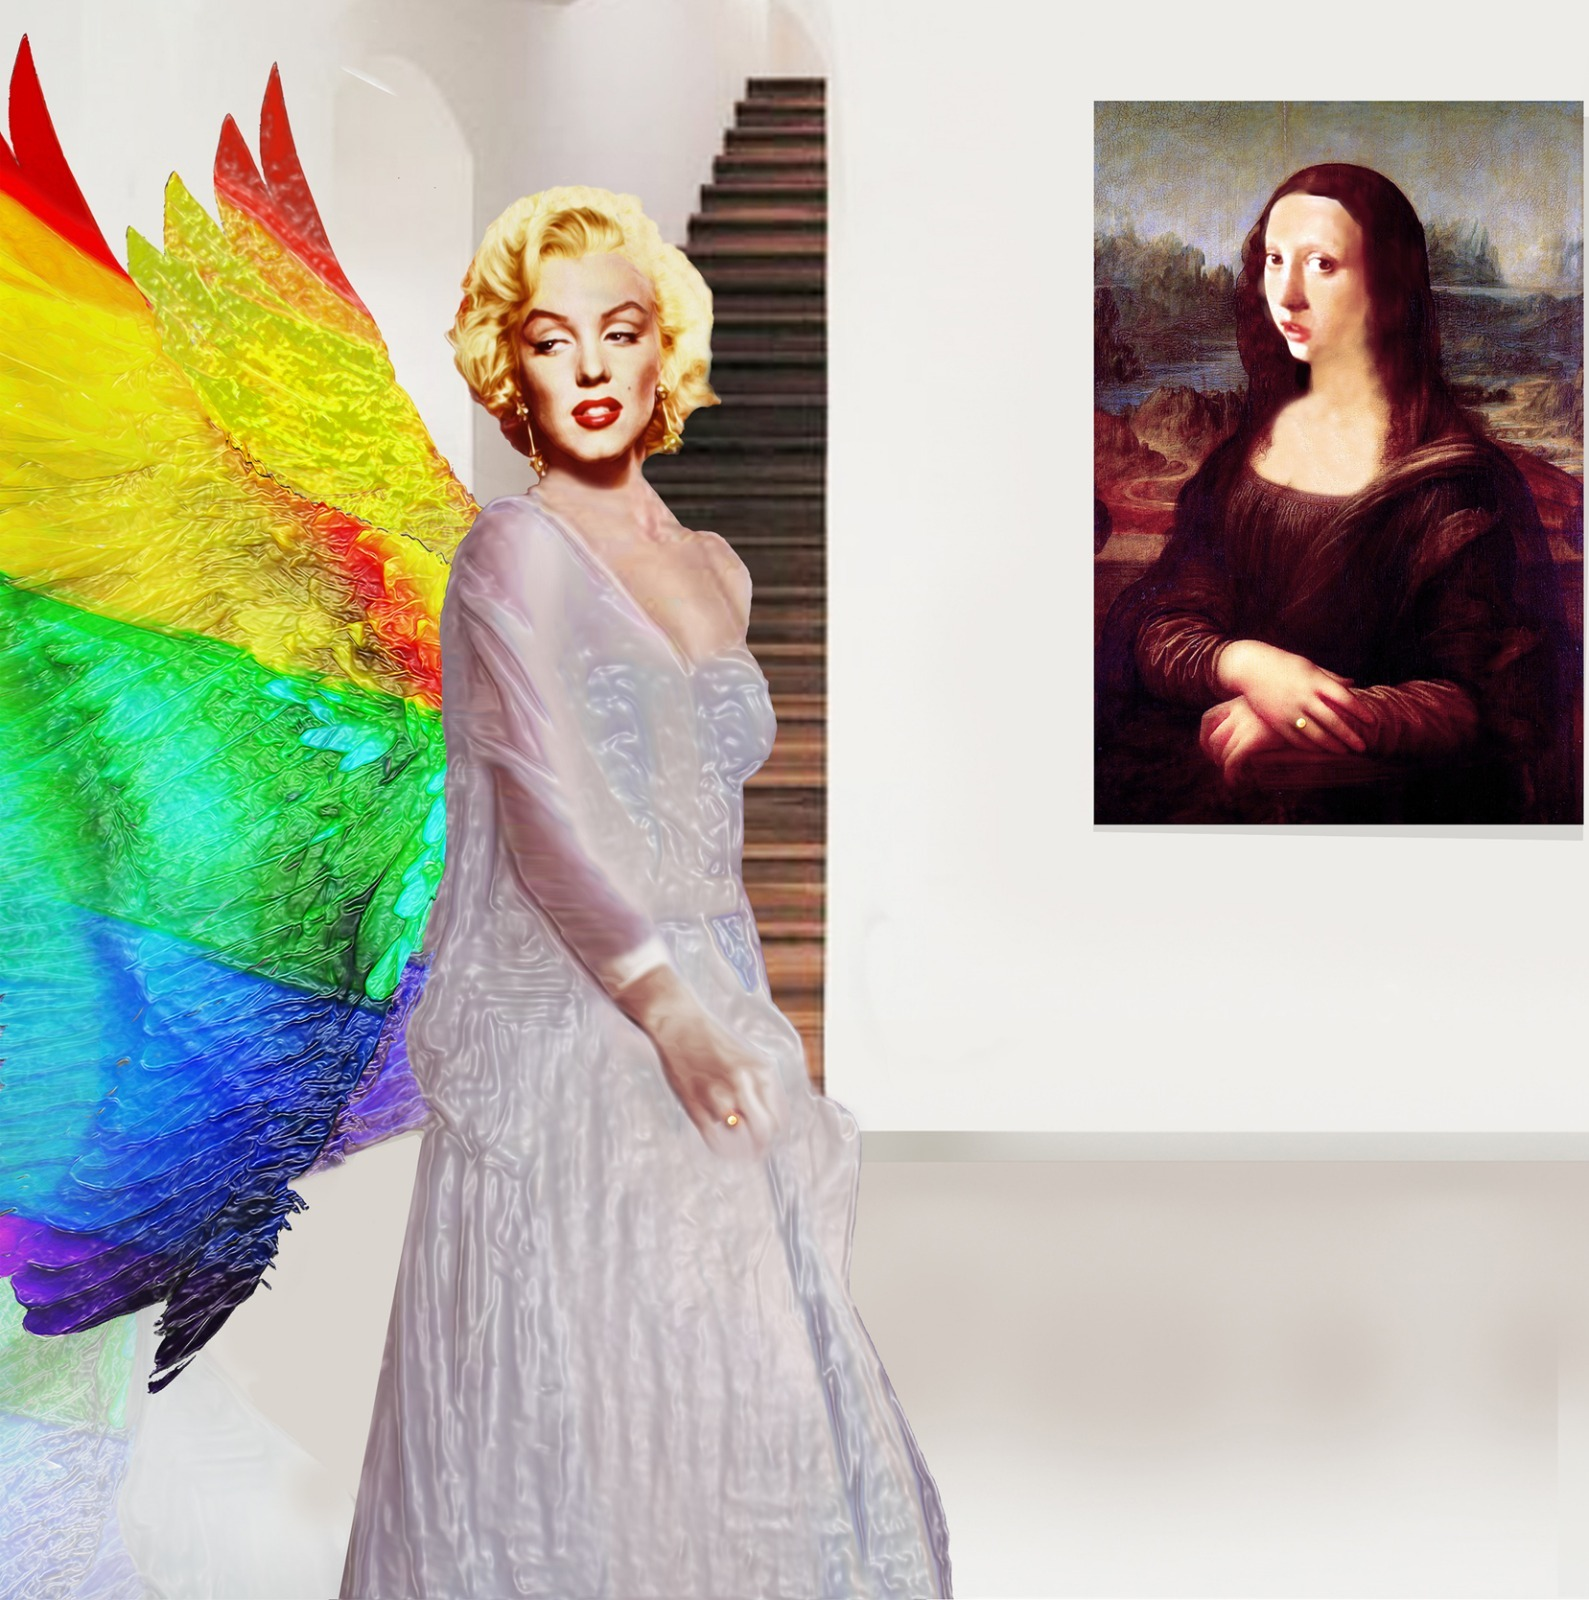 A-Muses in Art by Gordon Coldwell